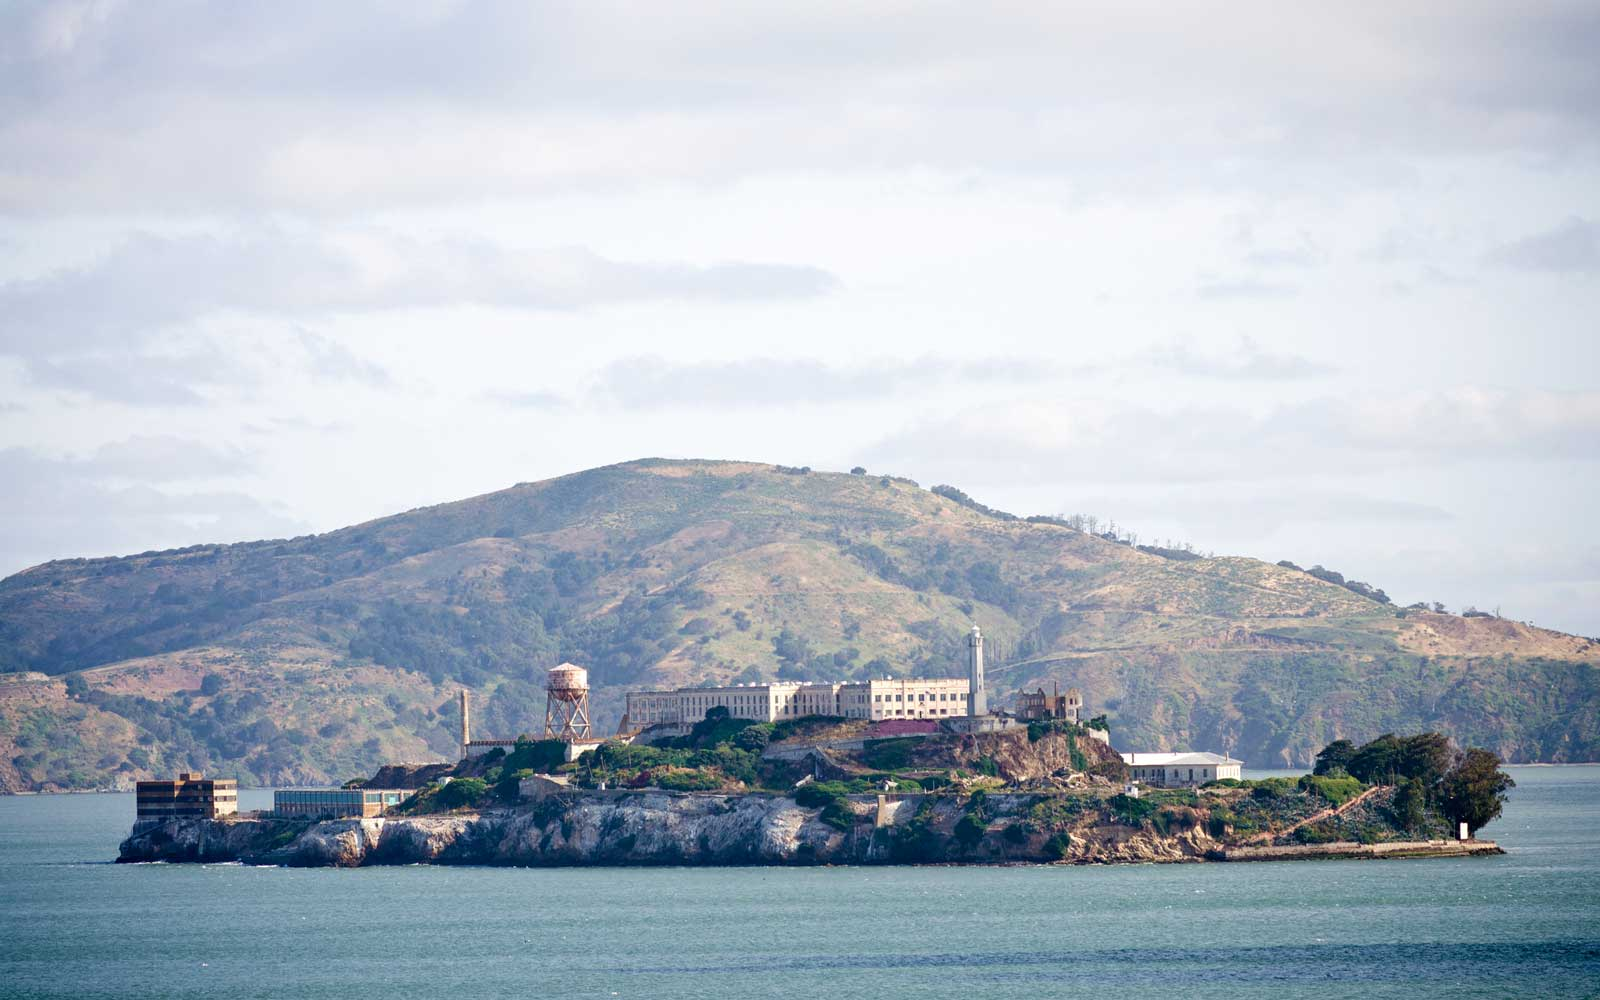 Alcatraz Island in San Francisco Bay with Angel Island State Park in the background.